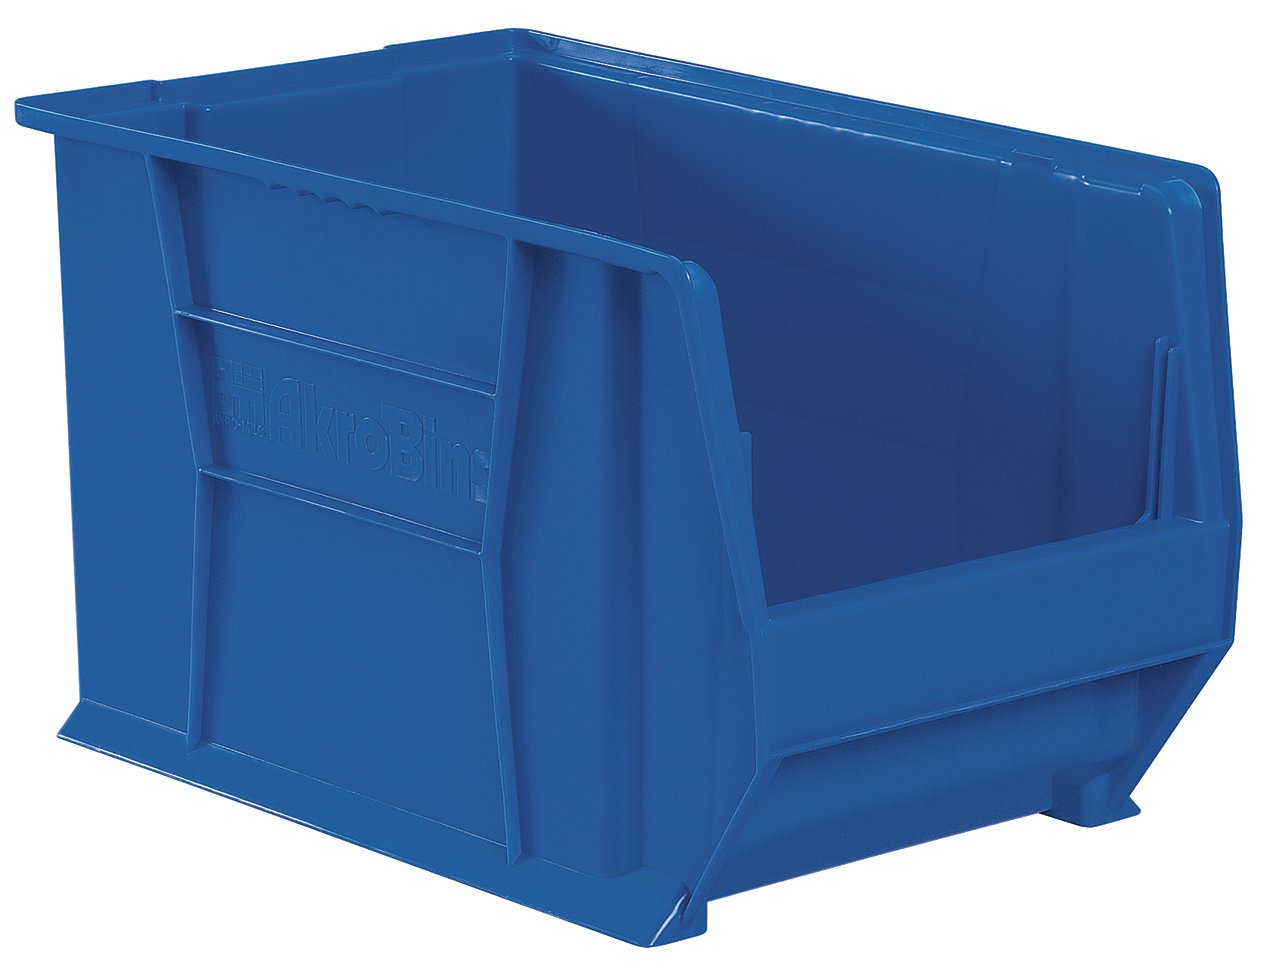 Akro-Mils 30282 20-Inch D by 12-Inch W by 12-Inch H Super Size Plastic Stacking Storage Akro Bin, Blue, Case of 2